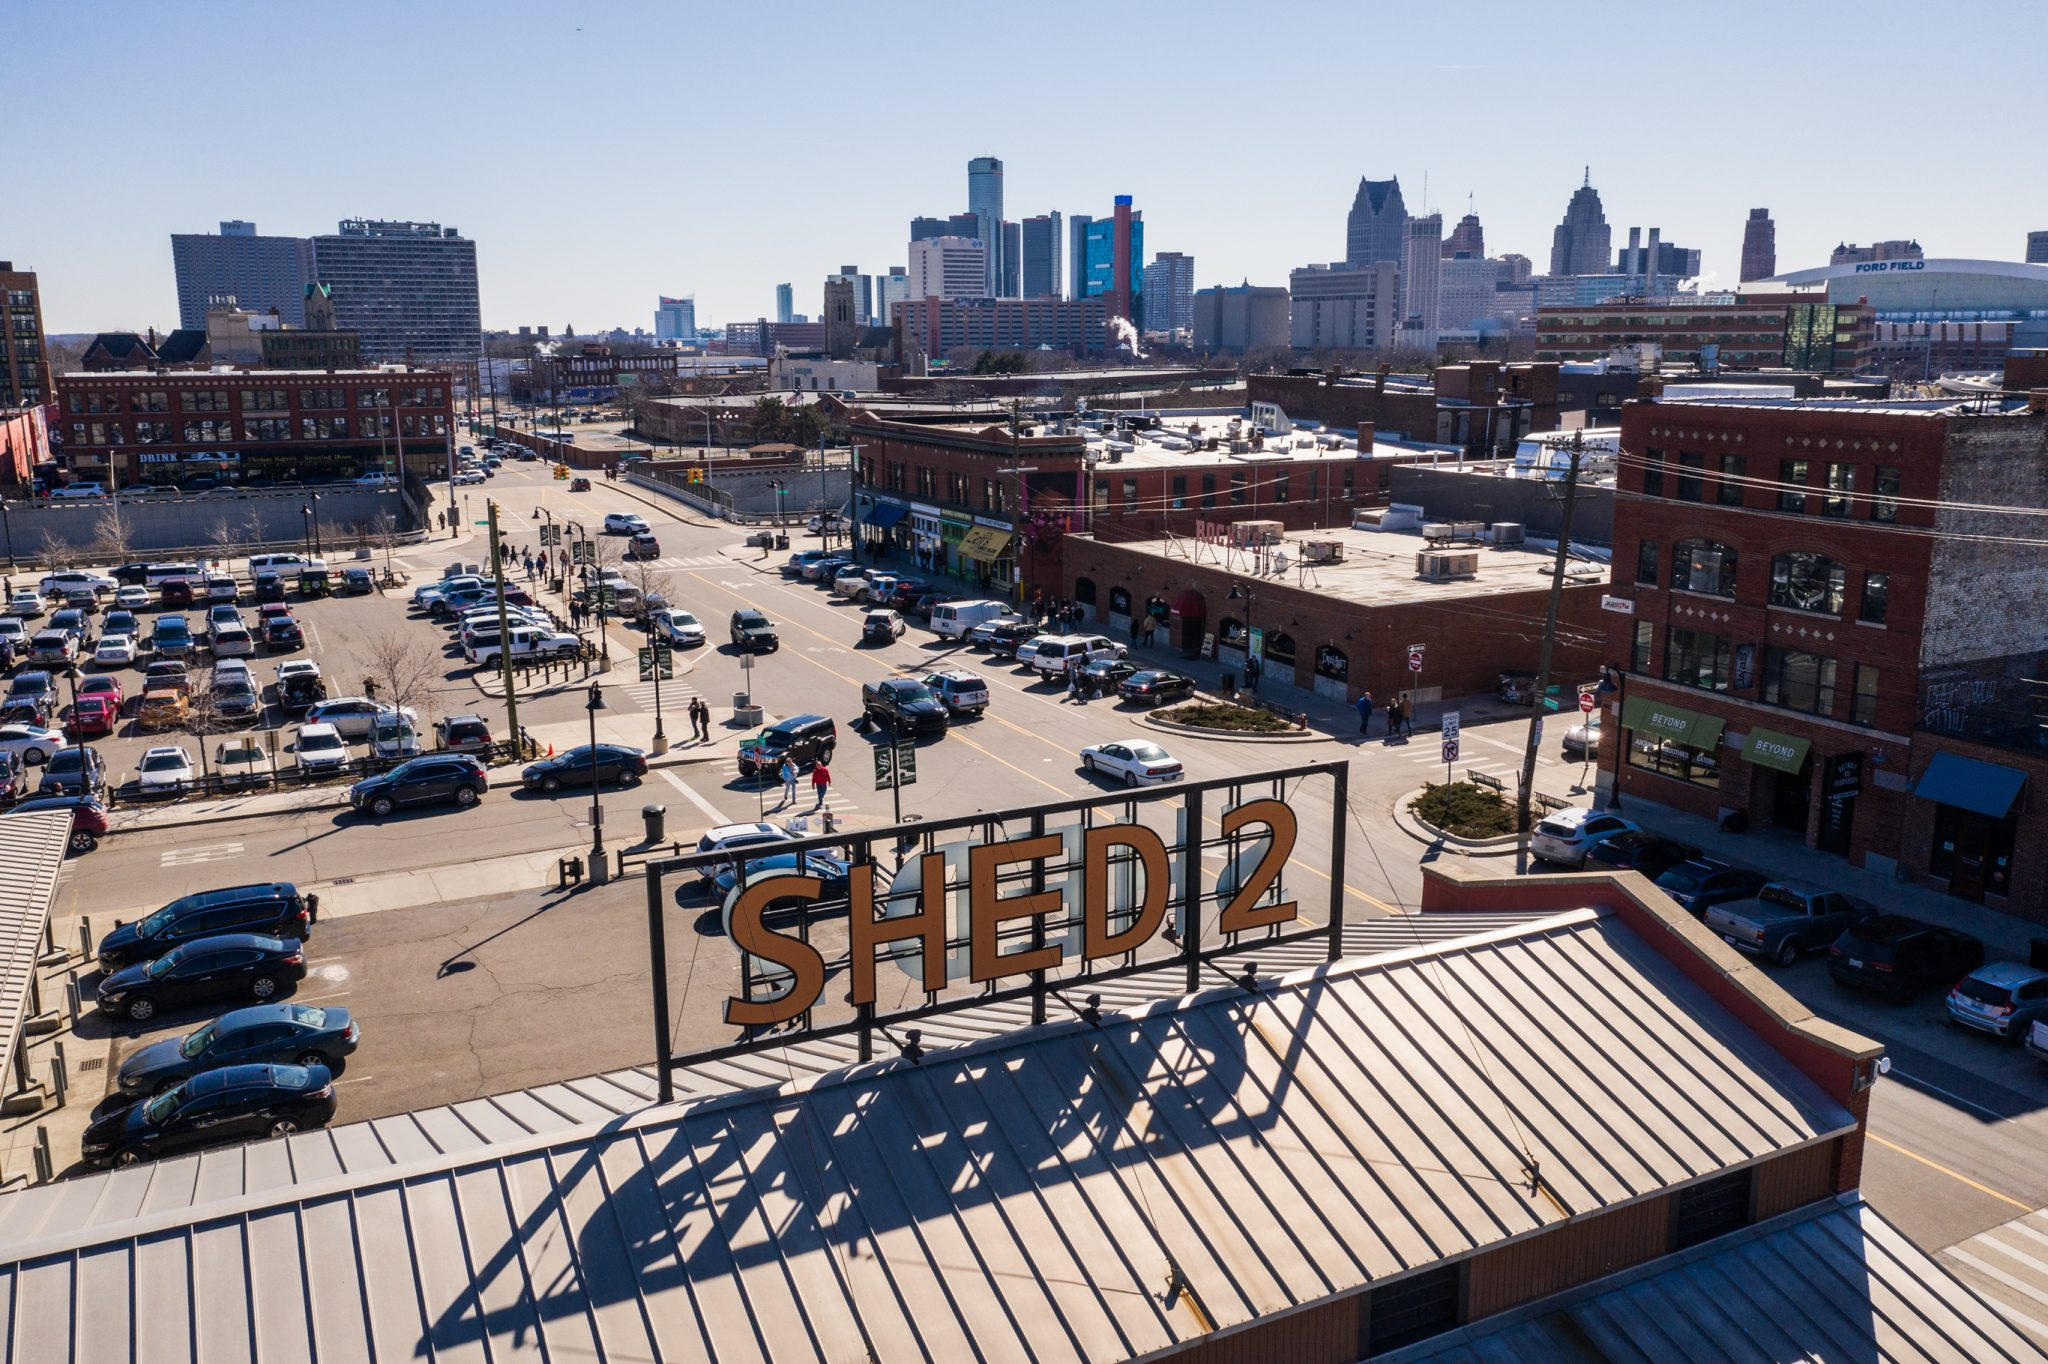 transportation // DETROIT'S EASTERN MARKET WILL BE THE LOCATION OF E.W. GROBBEL SONS, INC.'S NEW AND EXPANDED PRODUCTION FACILITIES. PHOTO KATAI